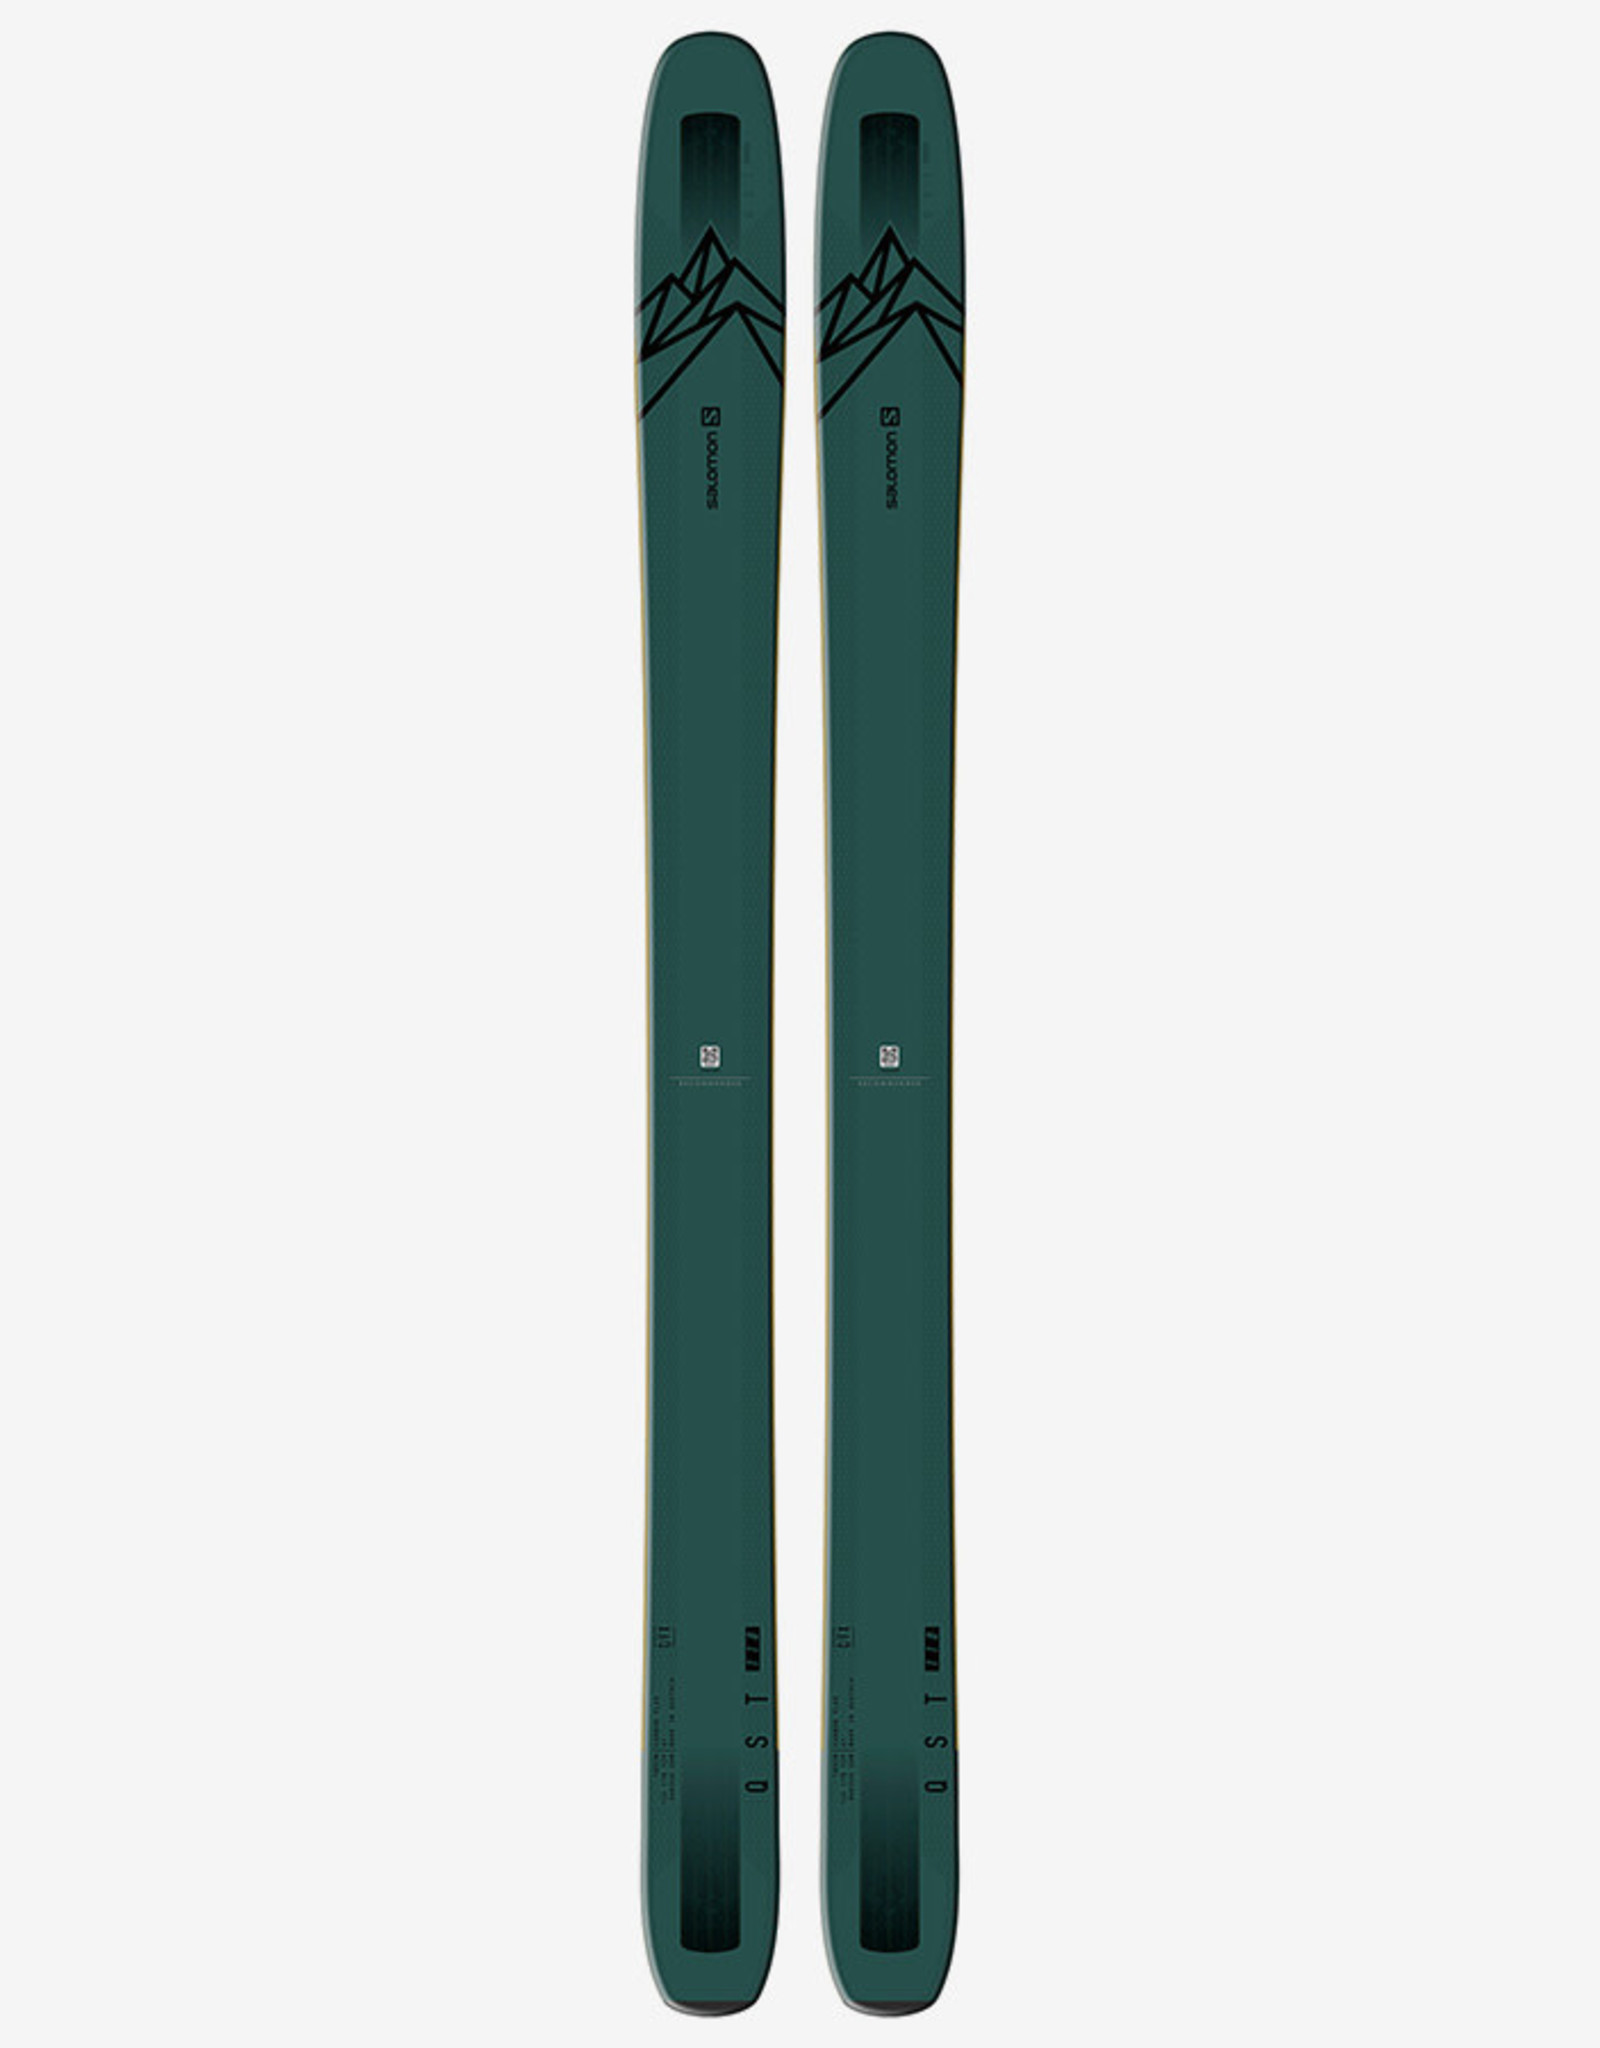 Salomon SALOMON Skis QST 118 (19/20)